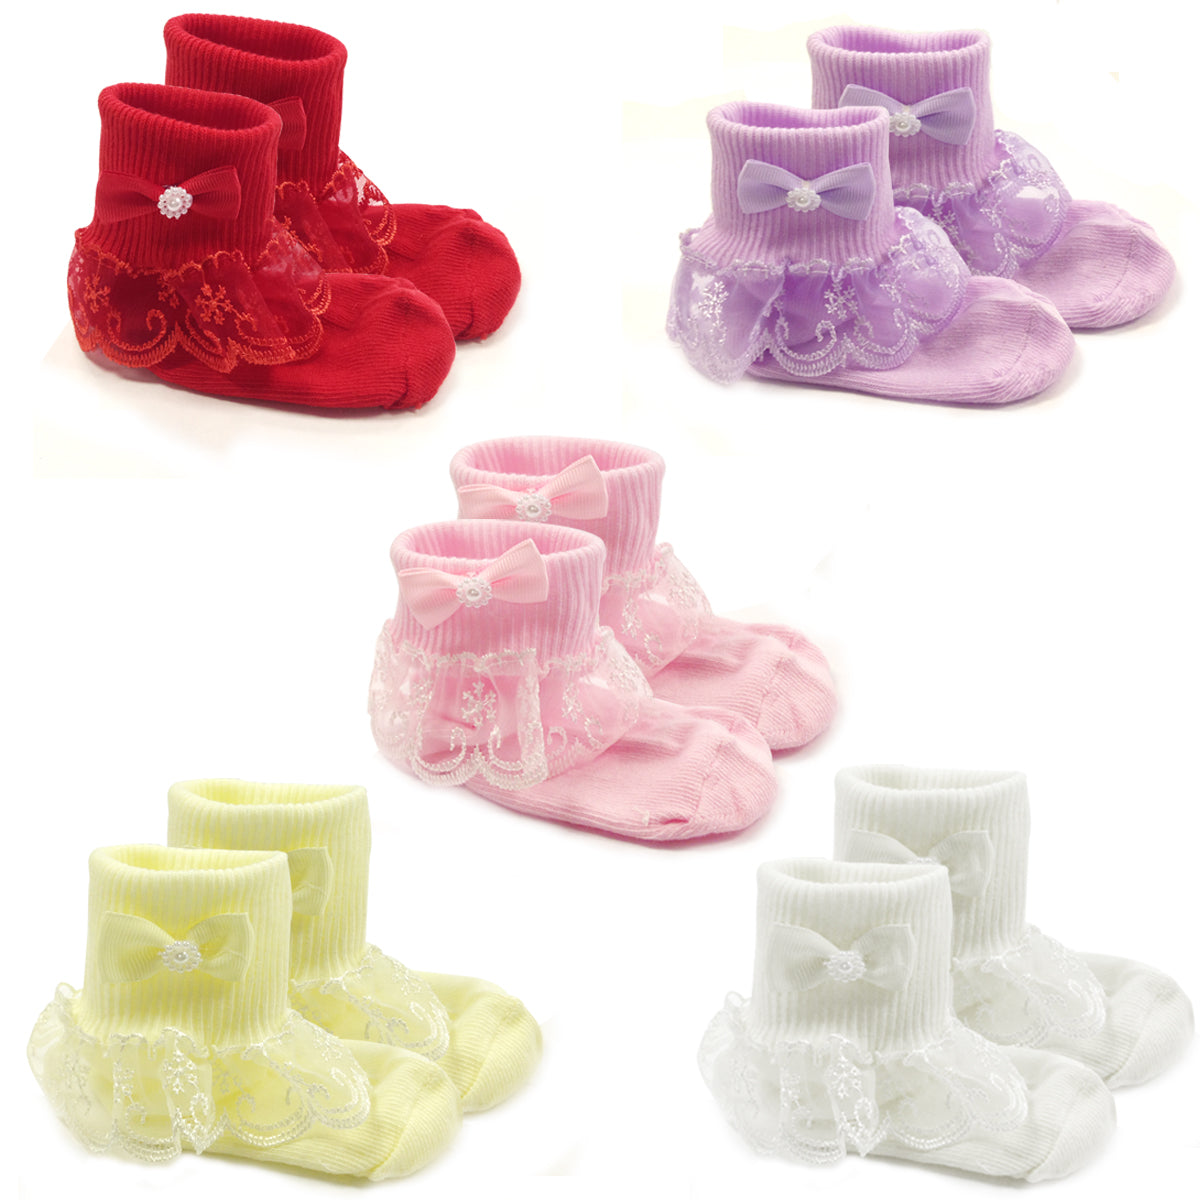 Wrapables Snowy Lace Ruffle Cuff Socks for Toddler Girl (Size 4-6), Set of 5